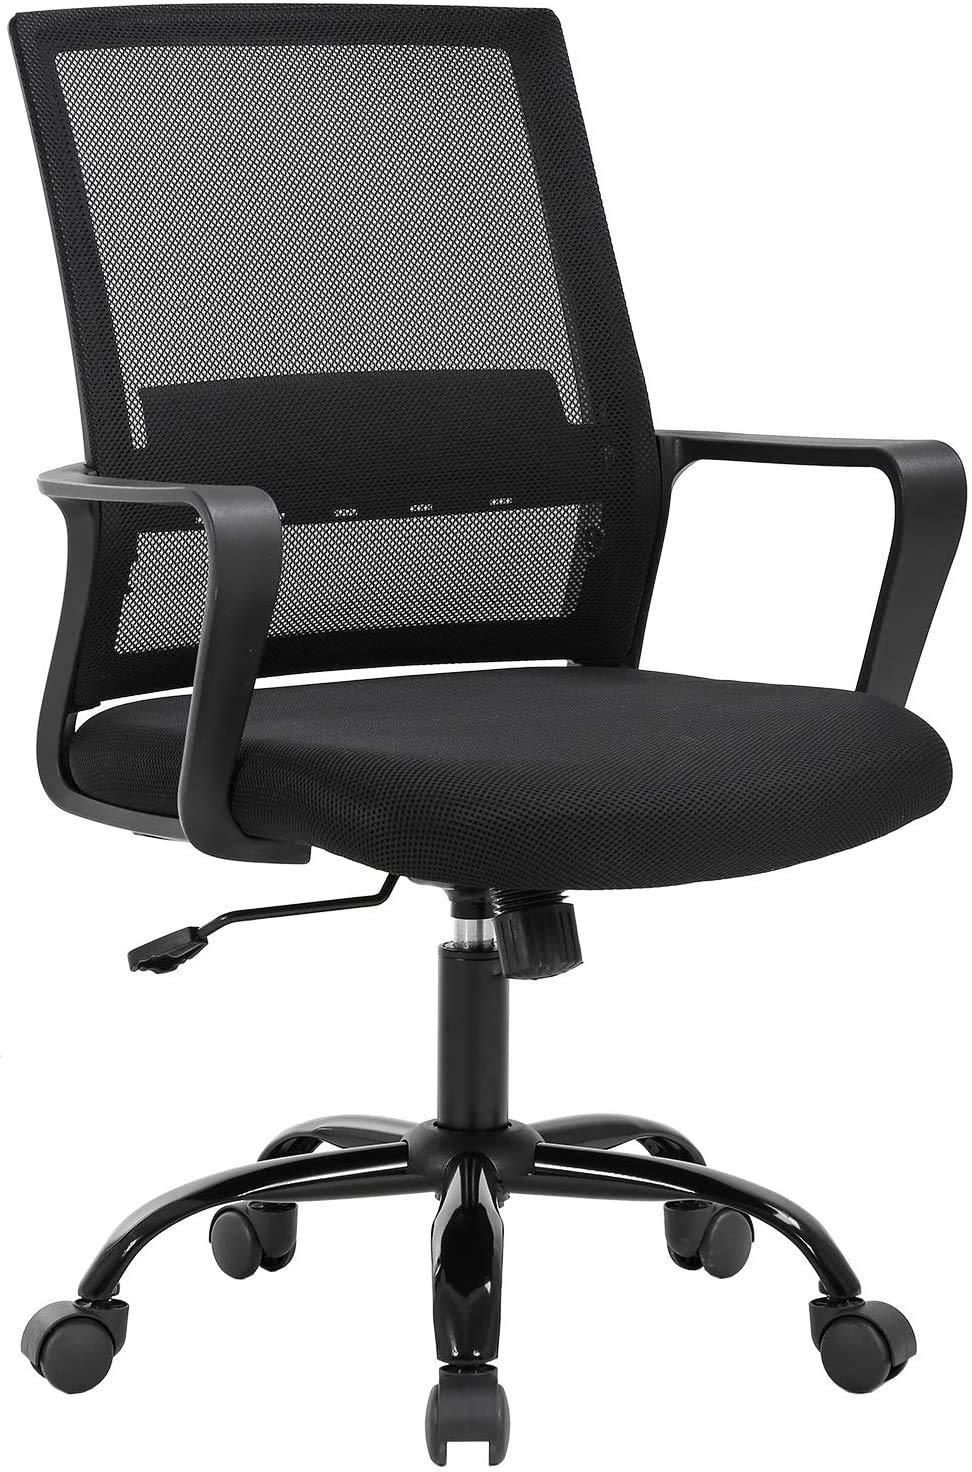 Simple Home Ergonomic Desk Office Chair Mesh Chair, Lumbar Support Modern Executive Adjustable Stool Rolling Swivel Chair for Back Pain, Best Chic Modern Home Computer Office Desk Chair - Black